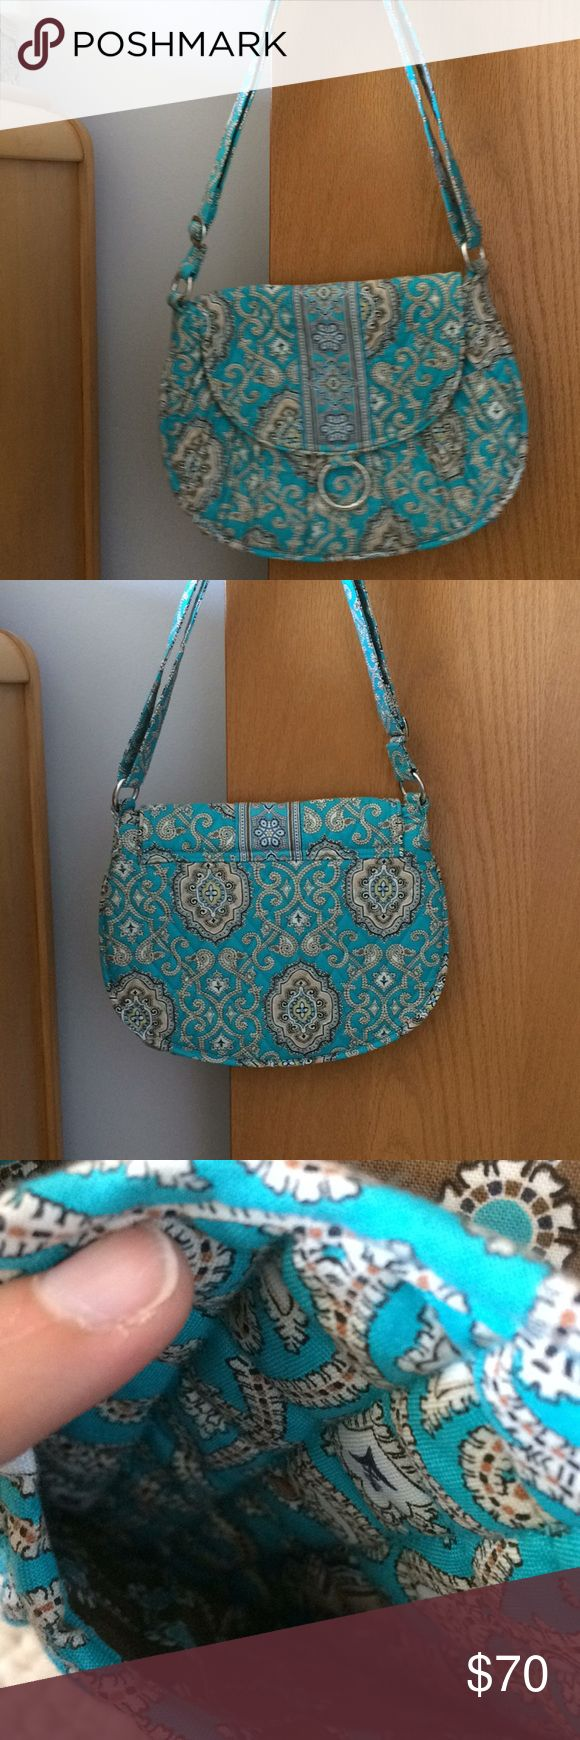 Vera Bradley saddle up Authentic Vera Bradley saddle up . Wonderful condition no tears or anything. This is the old style in saddle up and cannot find in stores . Used for two months . Vera Bradley Bags Shoulder Bags